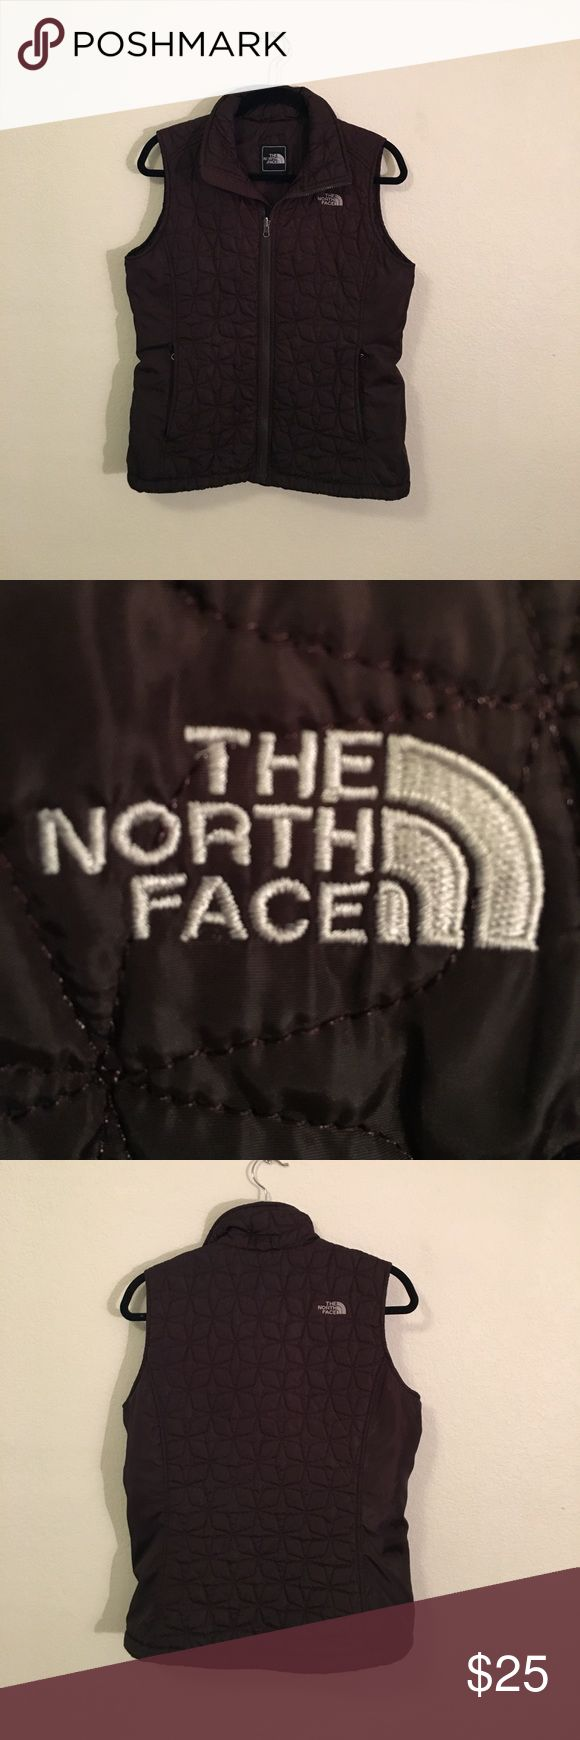 The North Face Vest! The North Face Vest.  Brown with beige decal.  Size Medium. Worn only a couple of times.  Good condition. No rips stains or tears. The North Face Jackets & Coats Vests